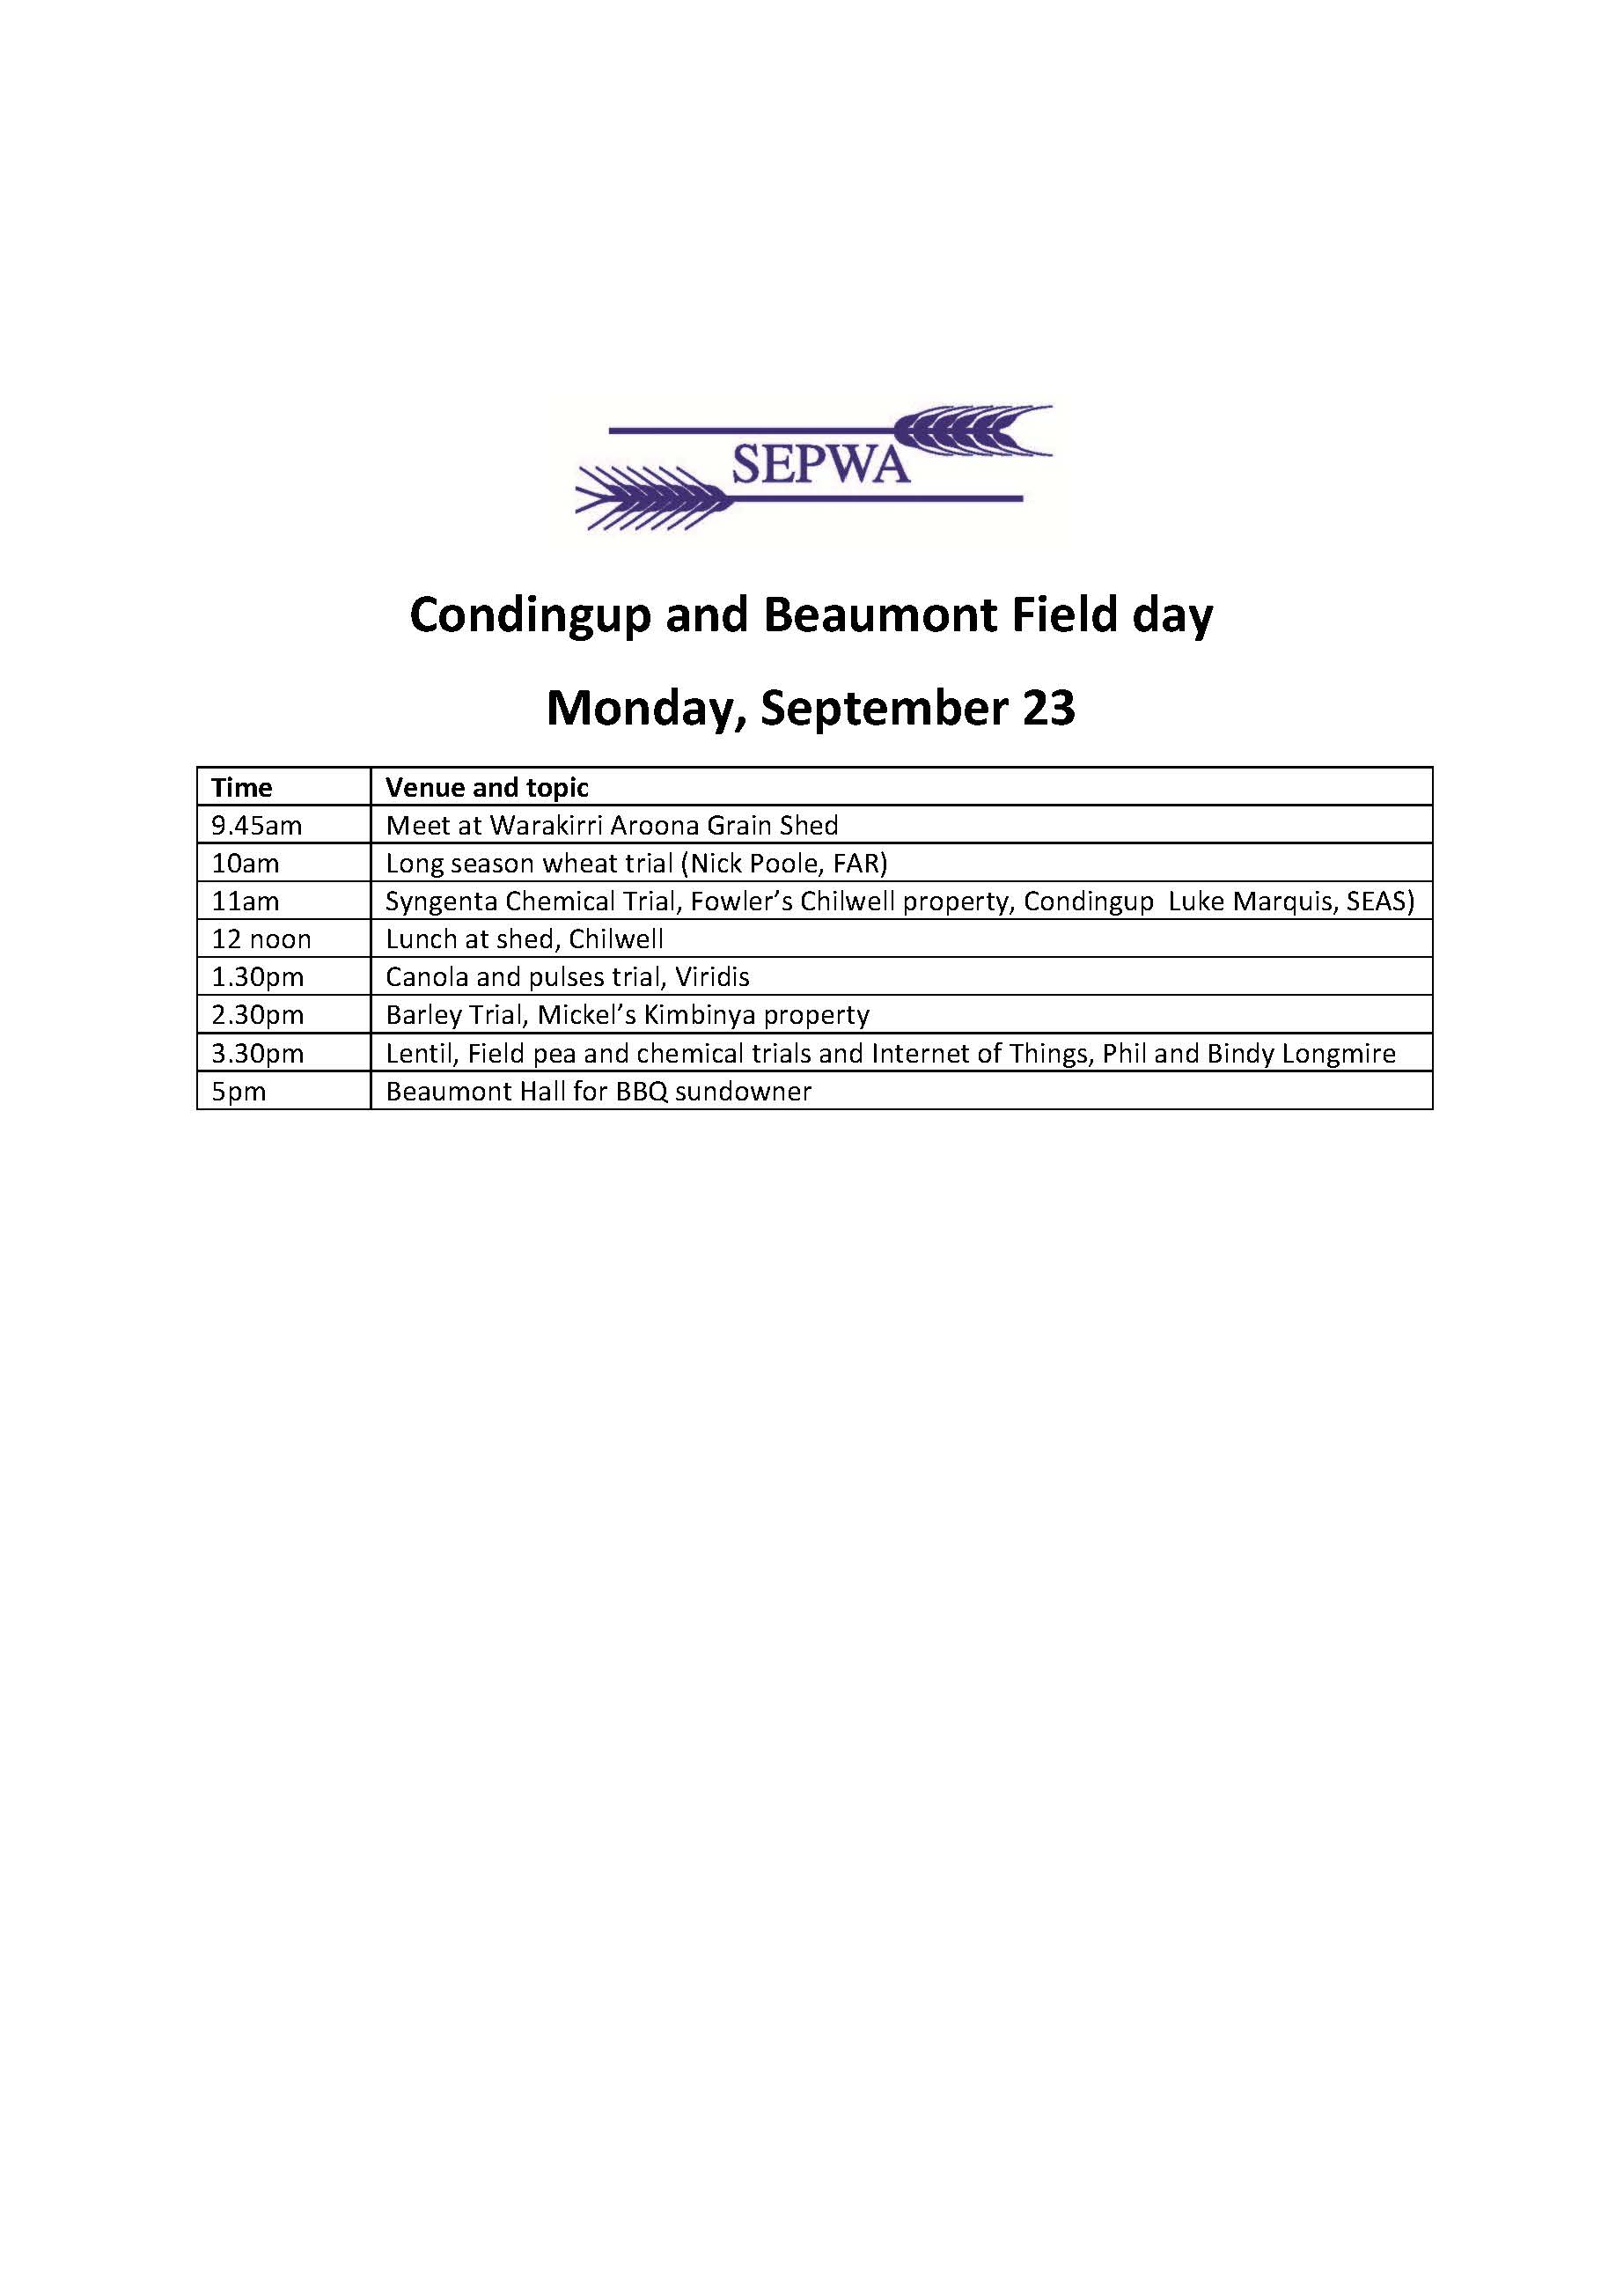 Condingup and Beaumont Field day